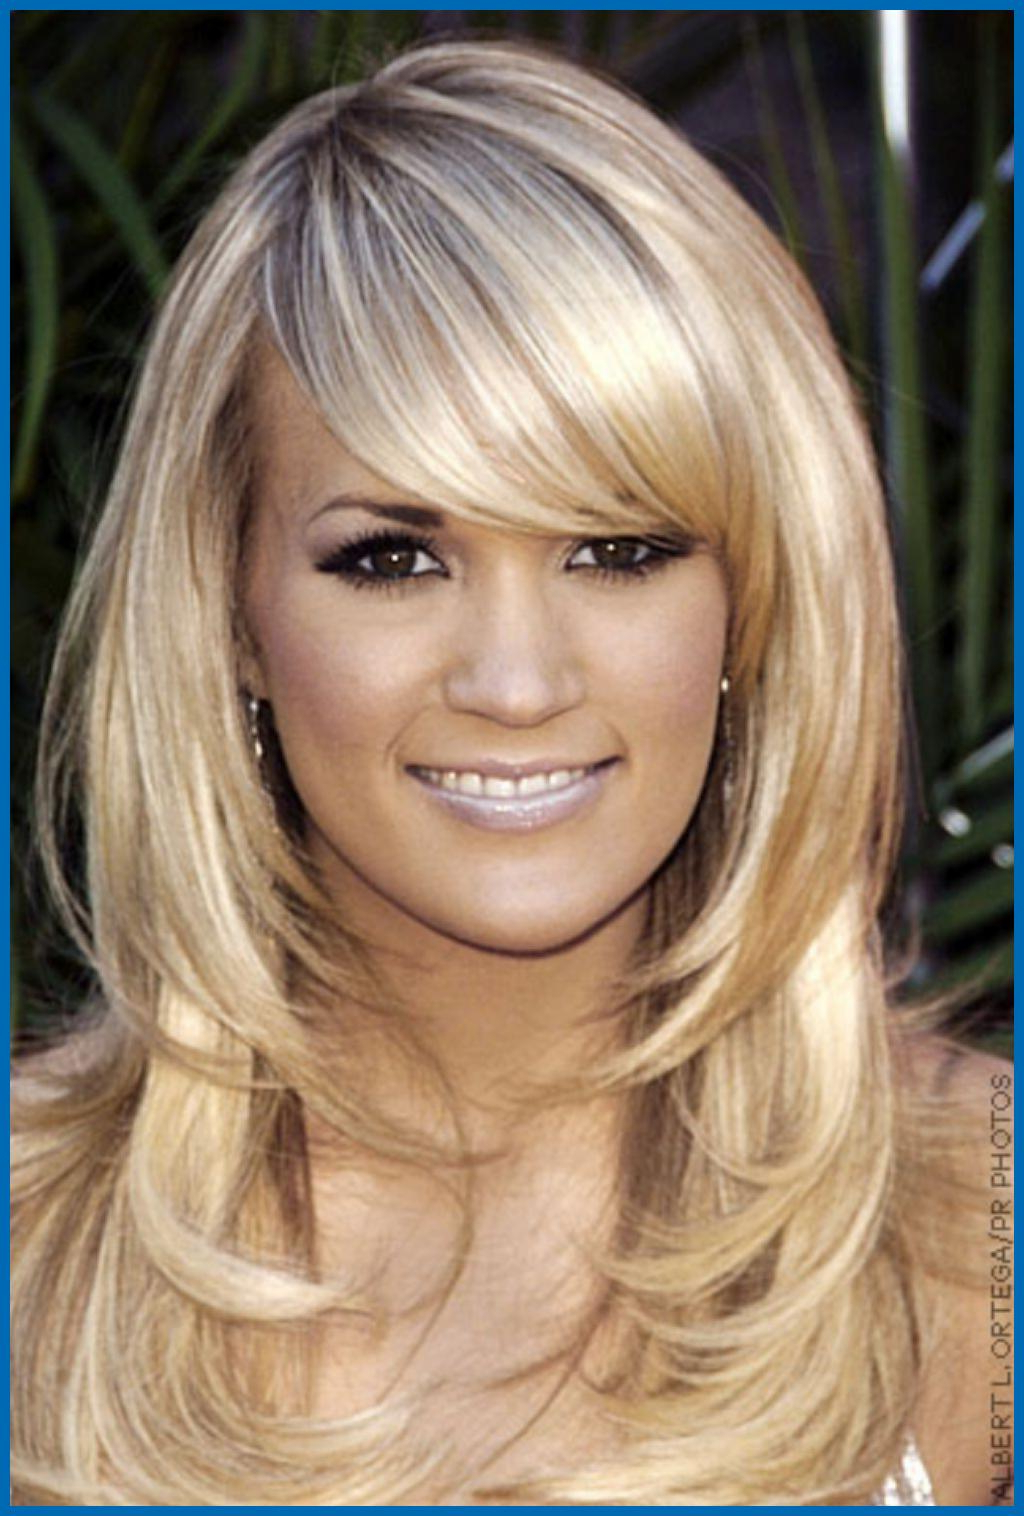 Hair Cuts : Hairstyles Medium Length Haircuts With Side Swept Bangs Inside Most Current Medium Haircuts Side Swept Bangs (View 6 of 20)